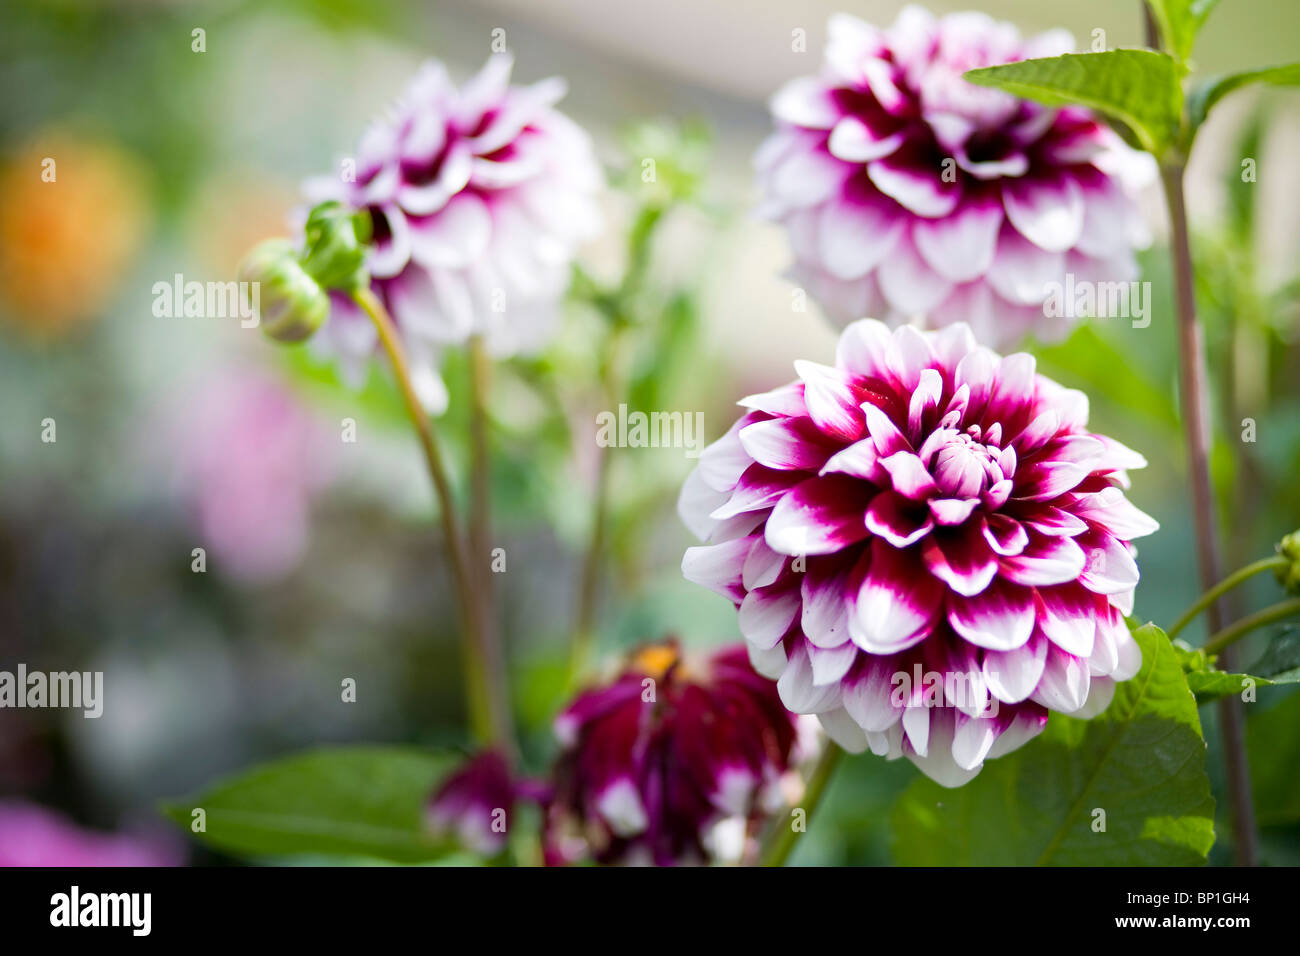 Dalia flowers in the garden at Charleston - Stock Image